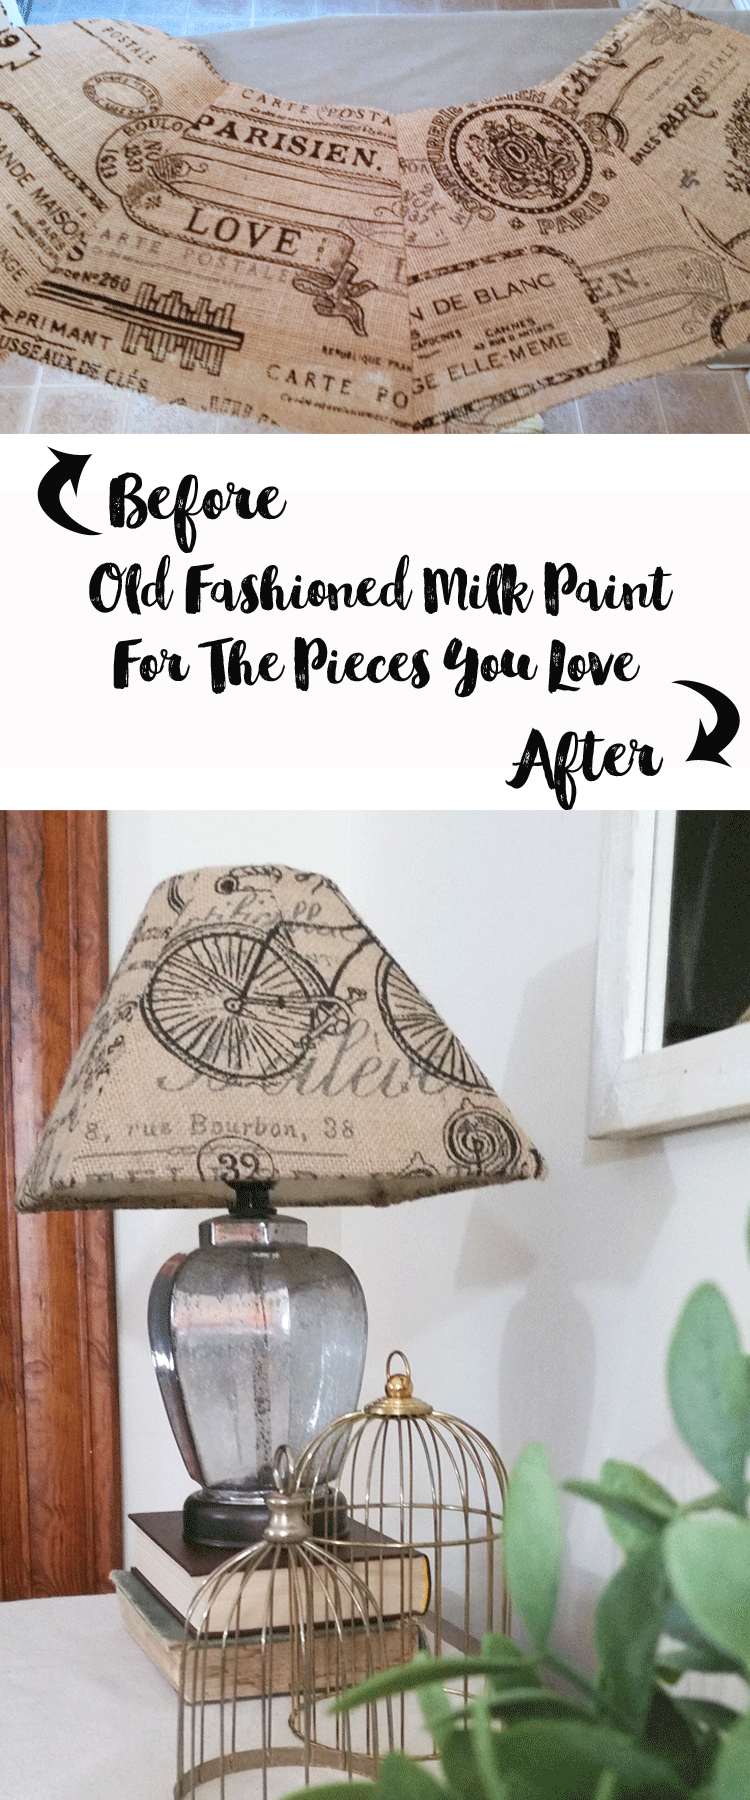 How To Make Old Lampshades New Again With Burlap